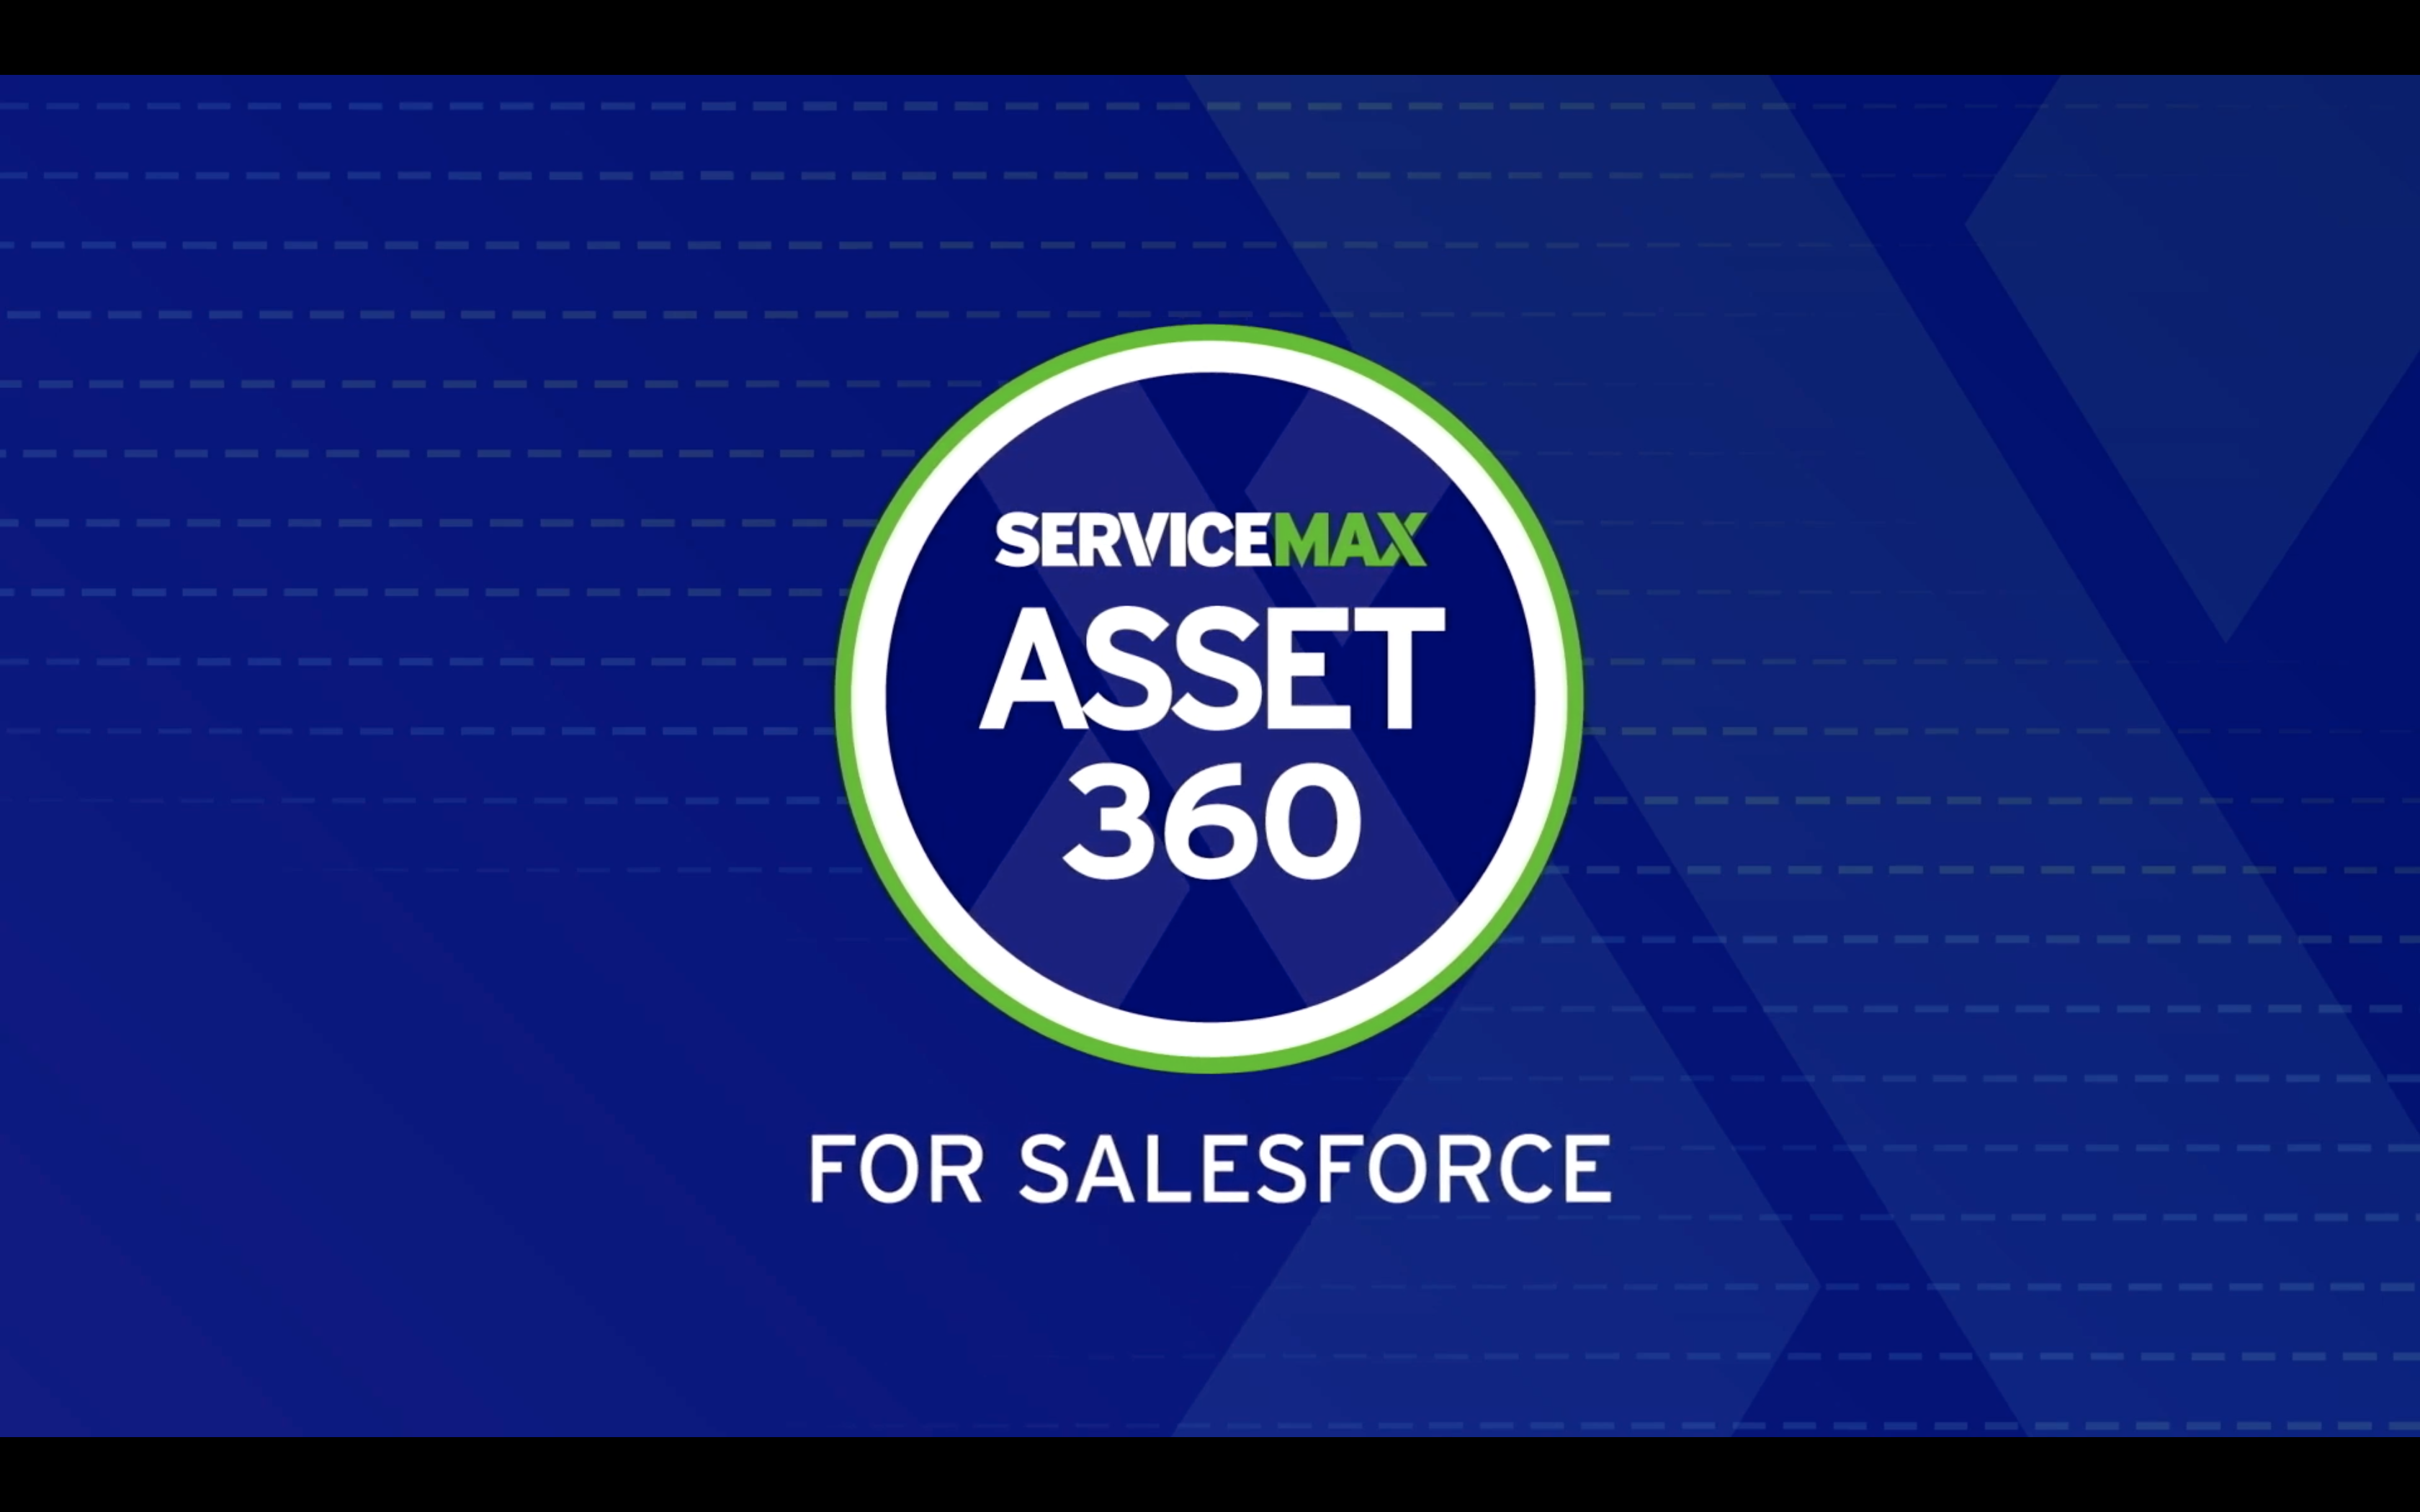 Asset 360 Product